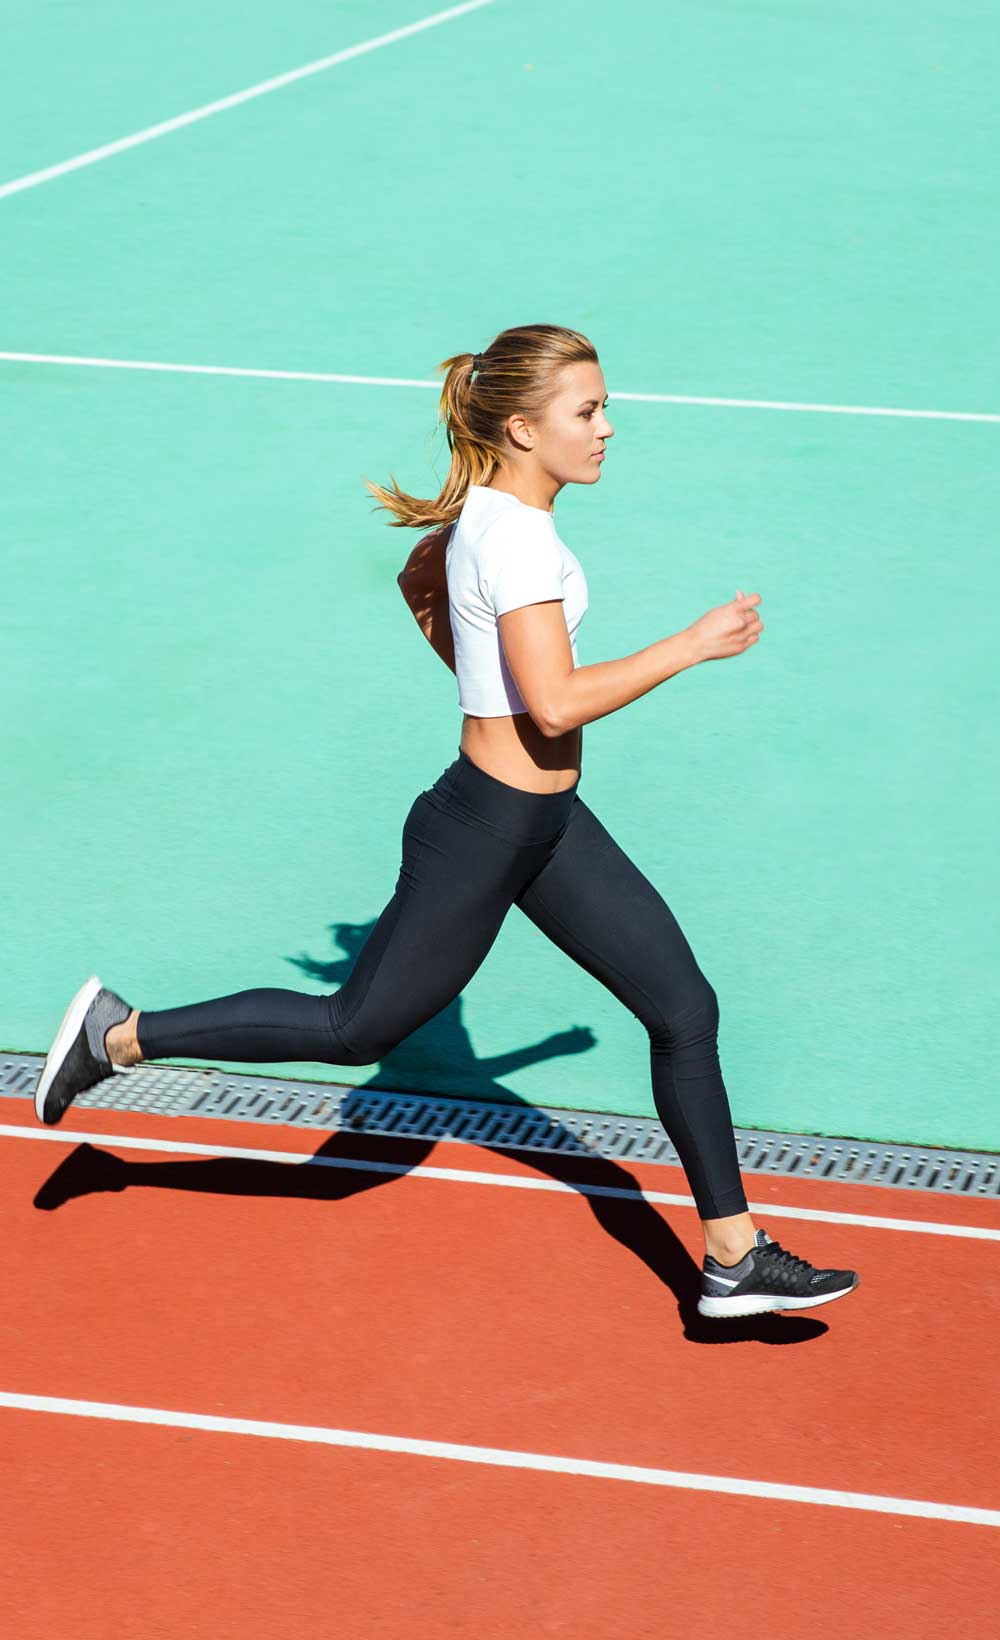 fitness-arm-weight-jogging-athletics.jpg